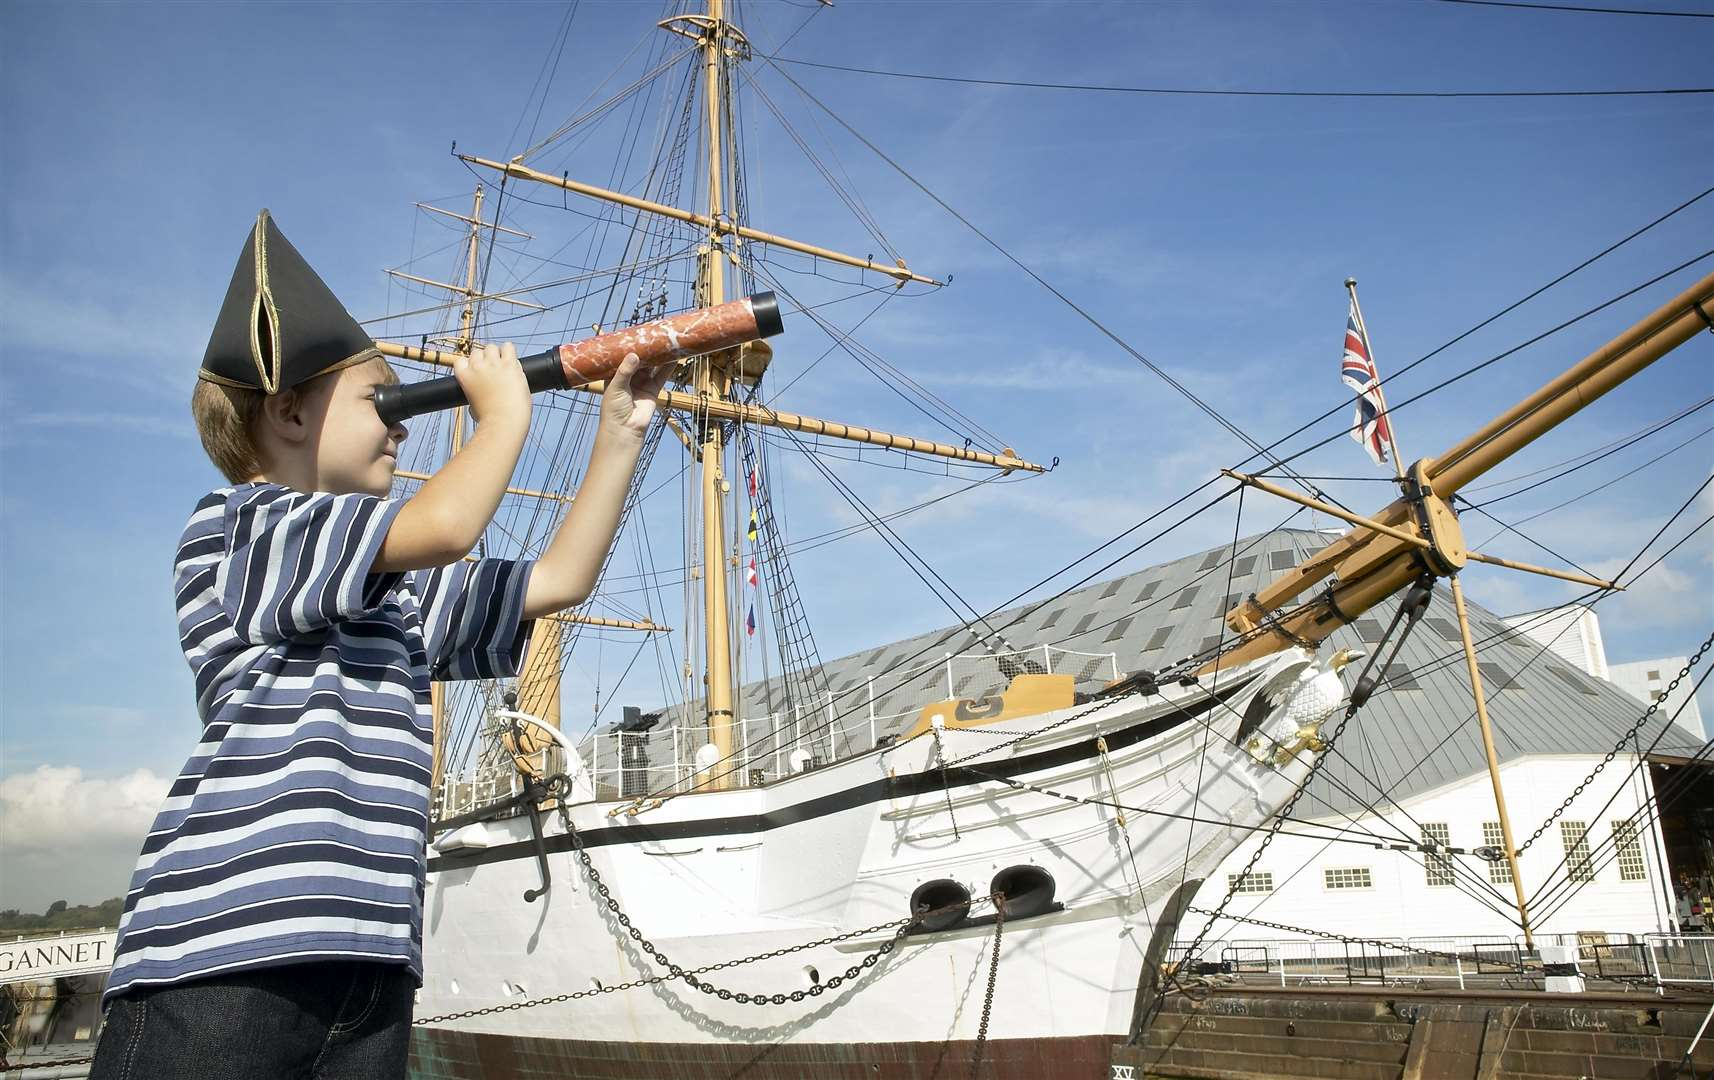 The Historic Dockyard Chatham will be part of Kent Big Weekend 2019